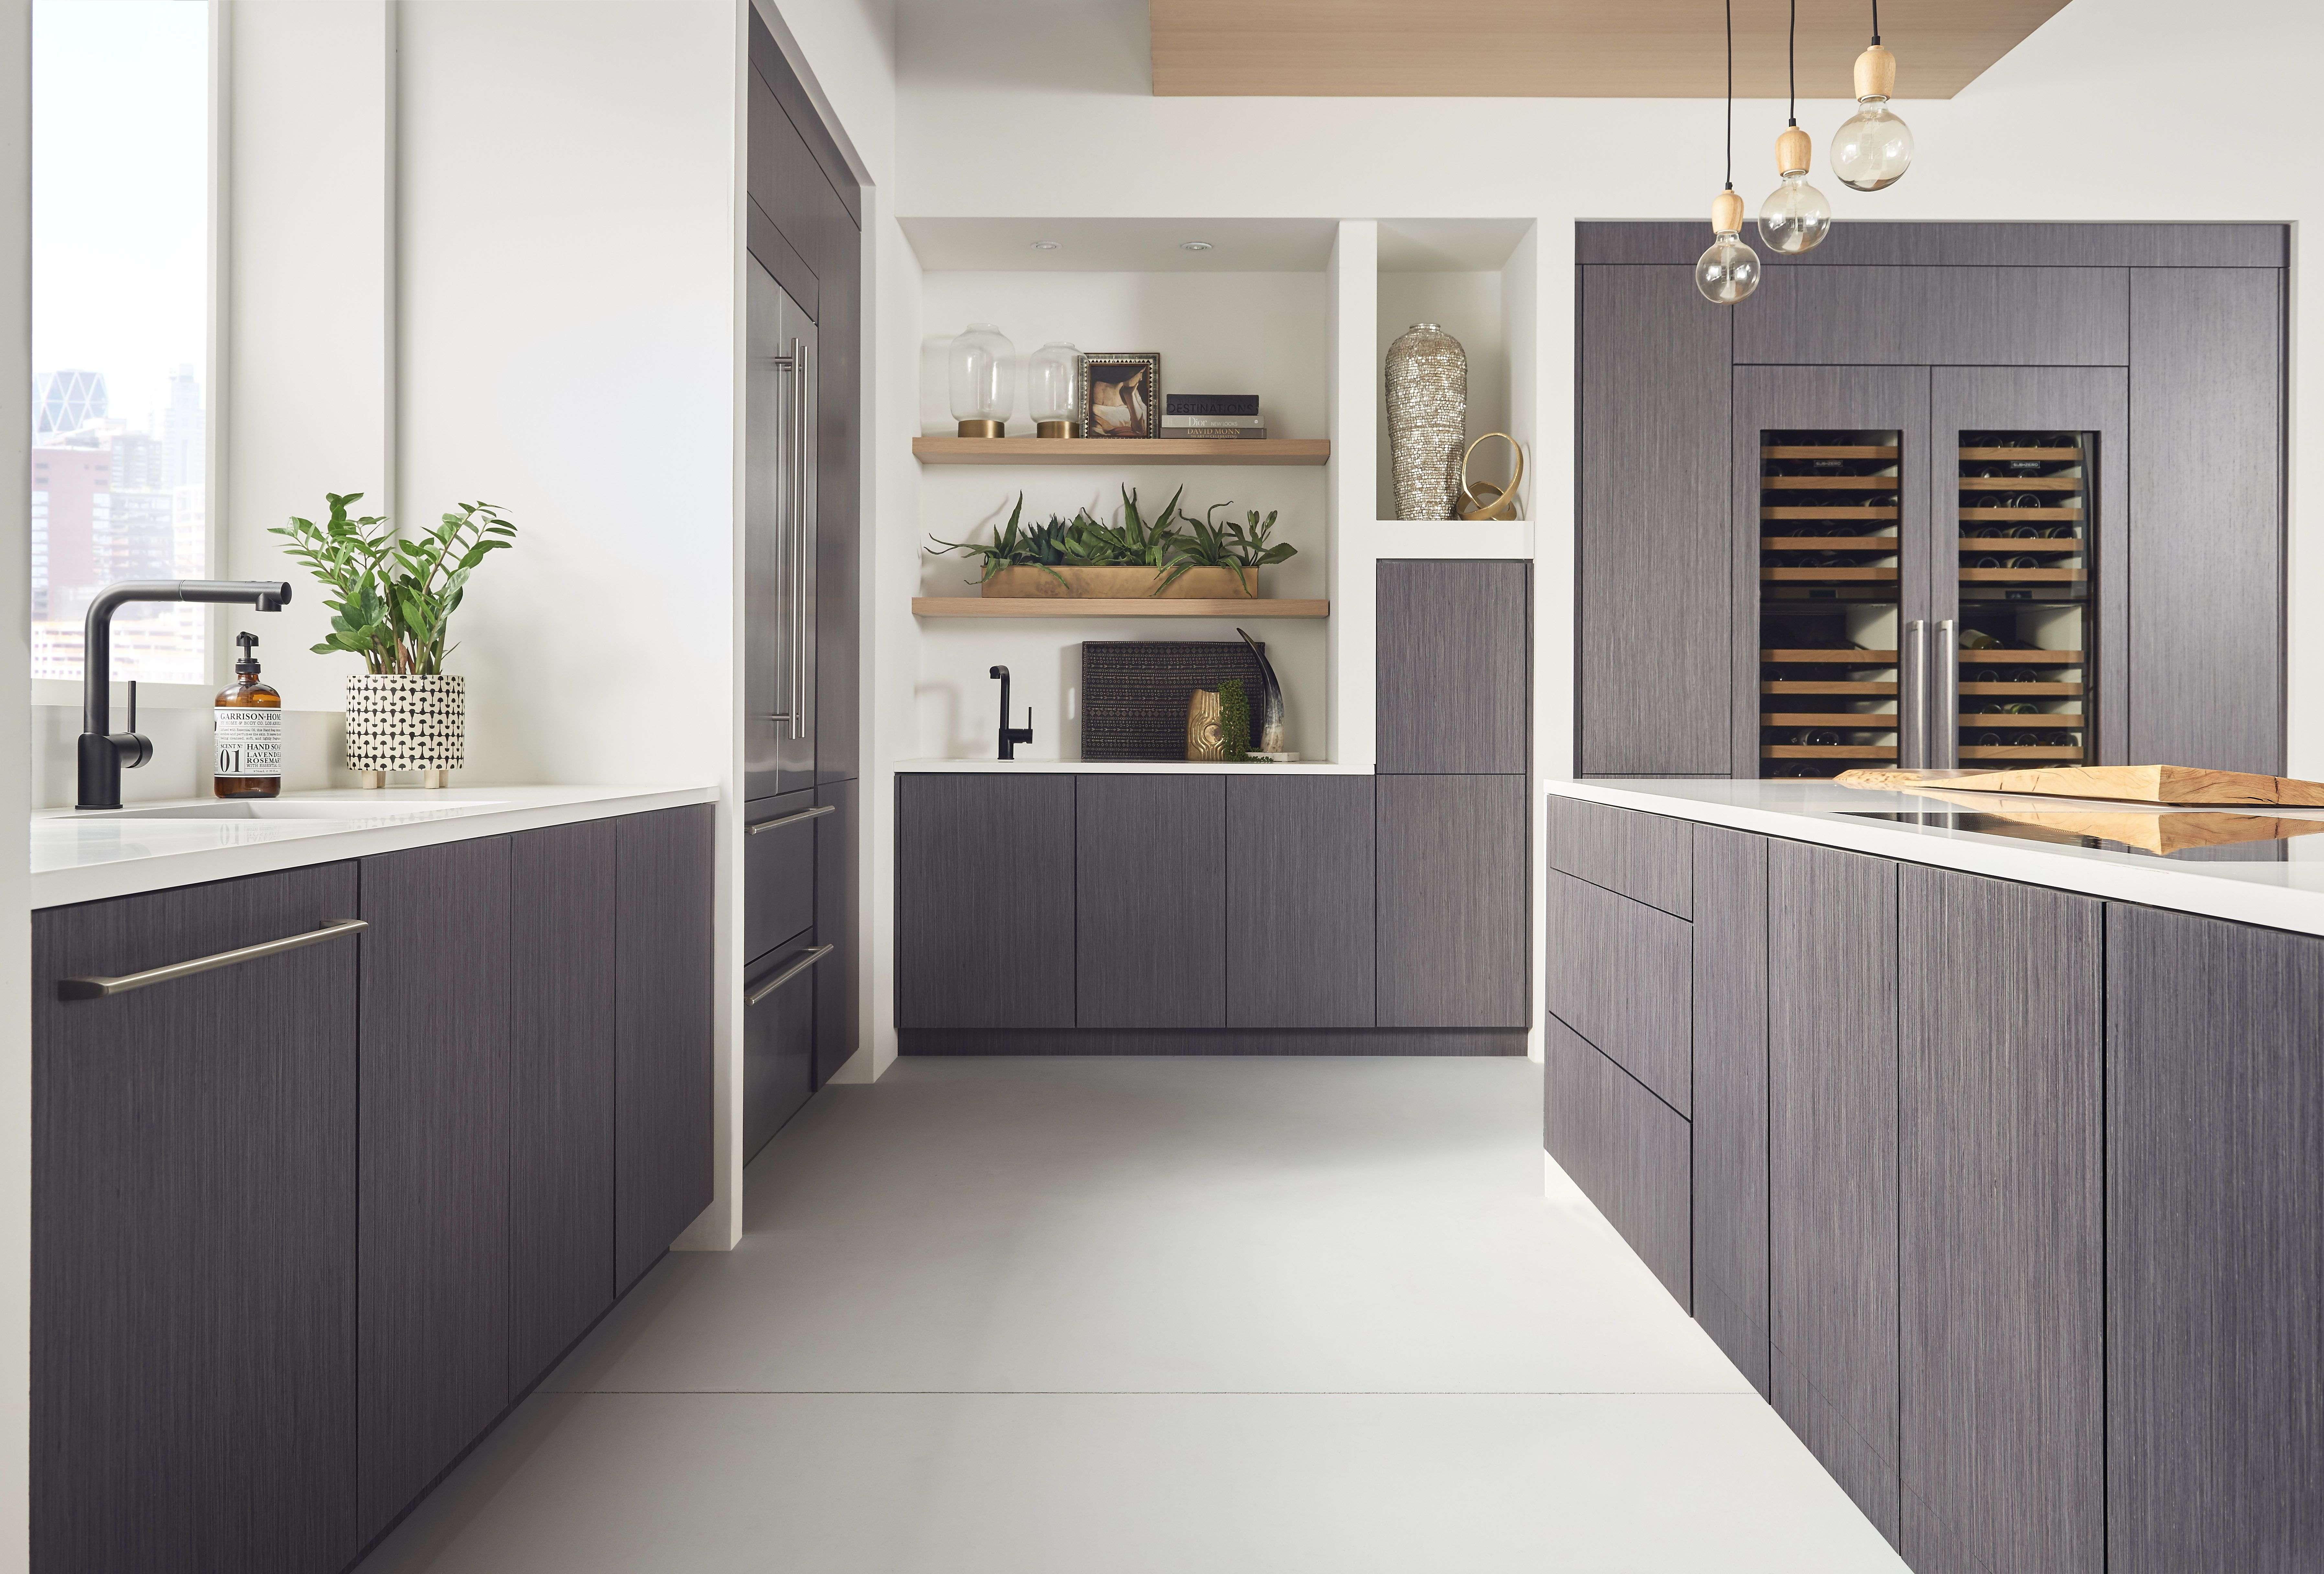 Contemporary Grey Wood Kitchen Kitchen Design Small Interior Design Kitchen Home Decor Kitchen